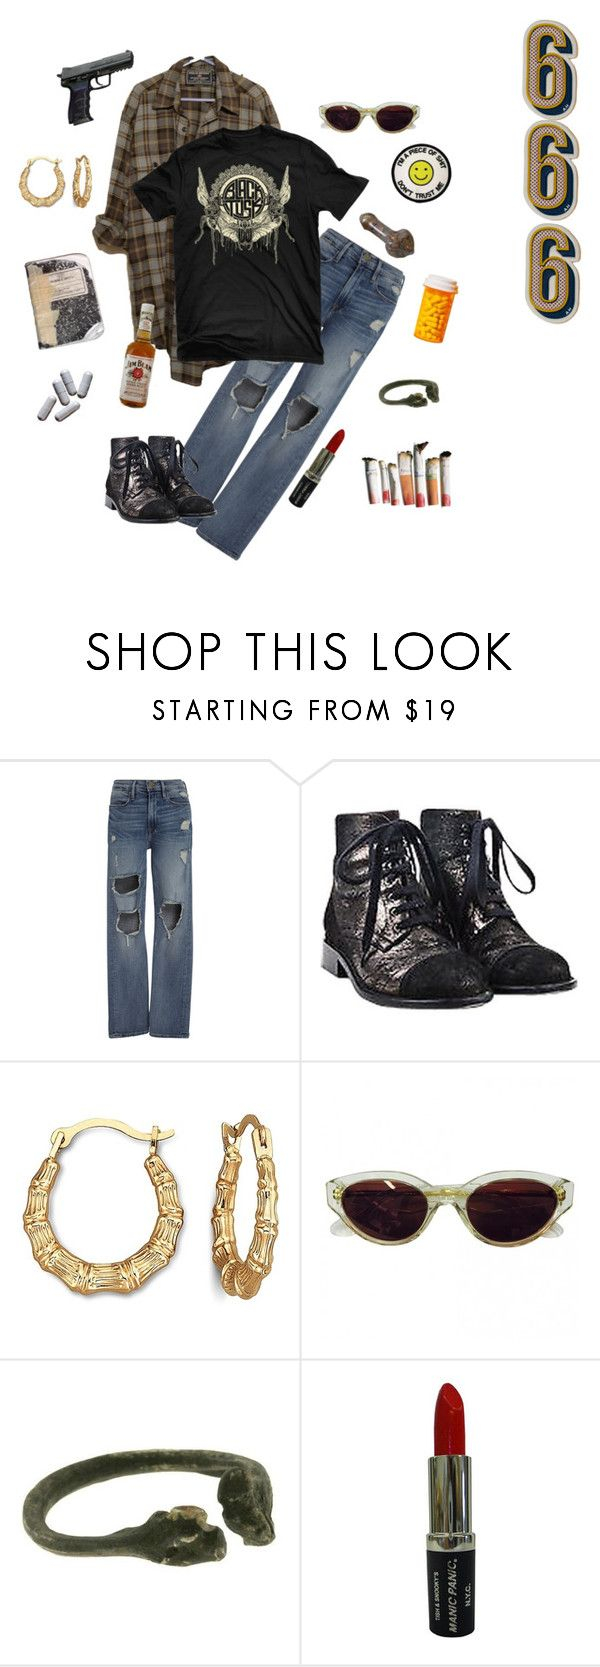 """Good Times and Mutilation"" by vulture95 ❤ liked on Polyvore featuring Frame, Chanel, RetroSuperFuture, Lady Grey, Jim Beam, Manic Panic NYC, Anya Hindmarch and bandtees"